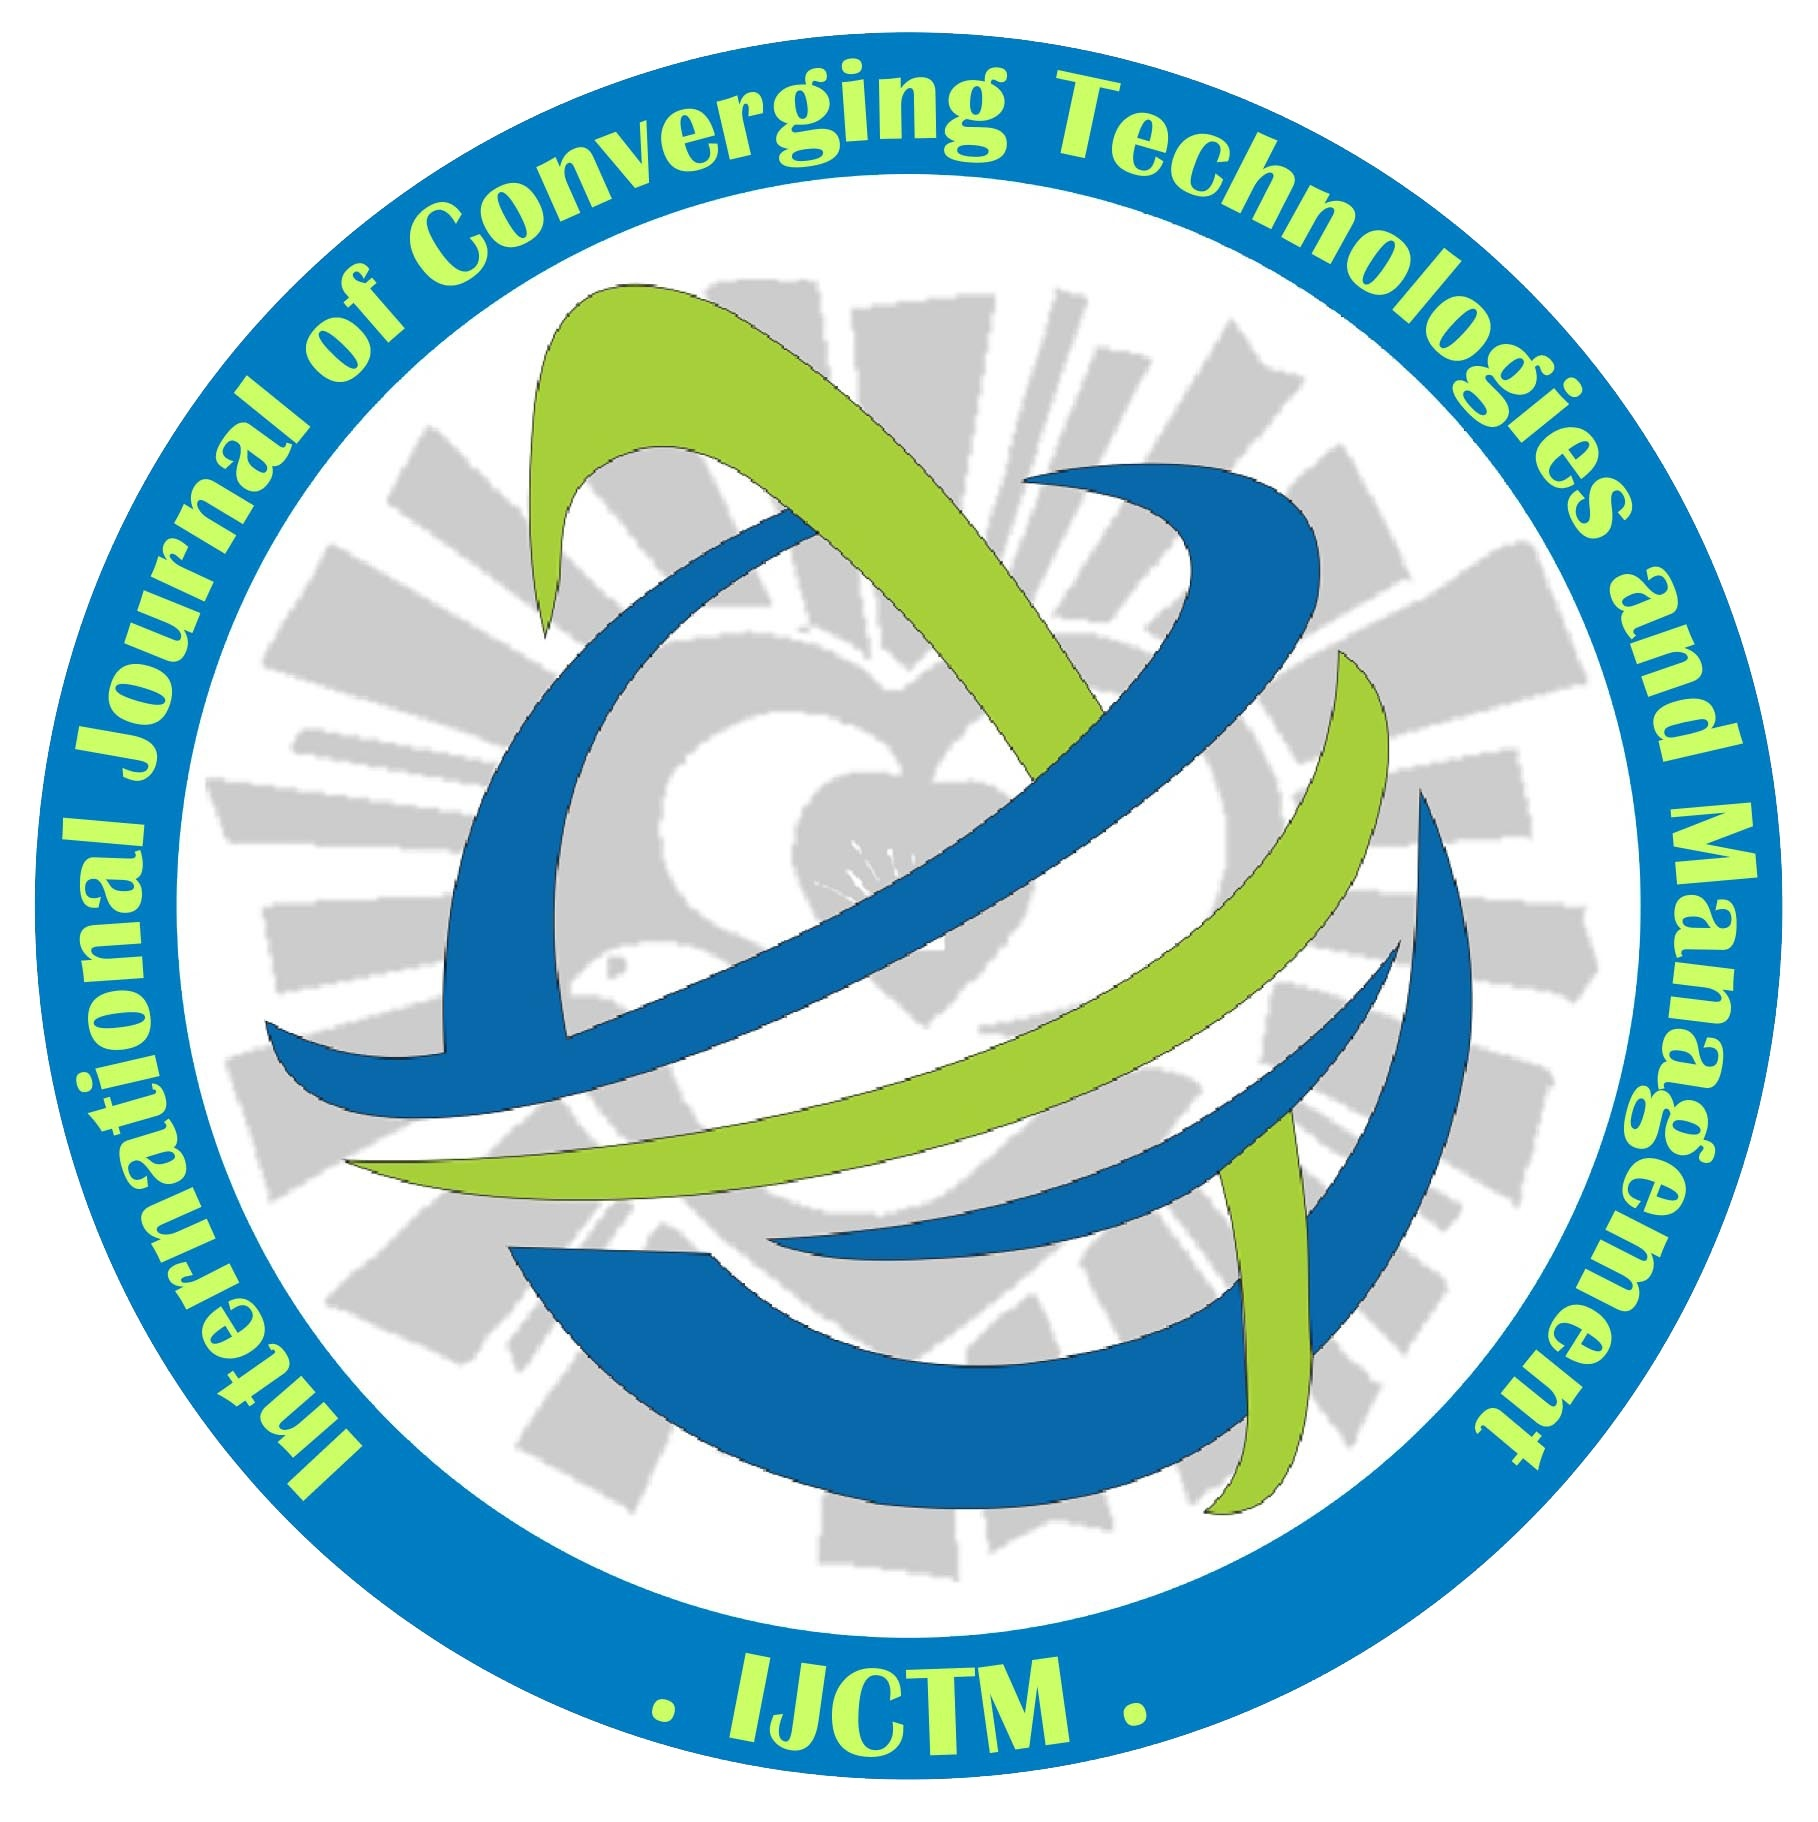 International journal of converging technologies and management